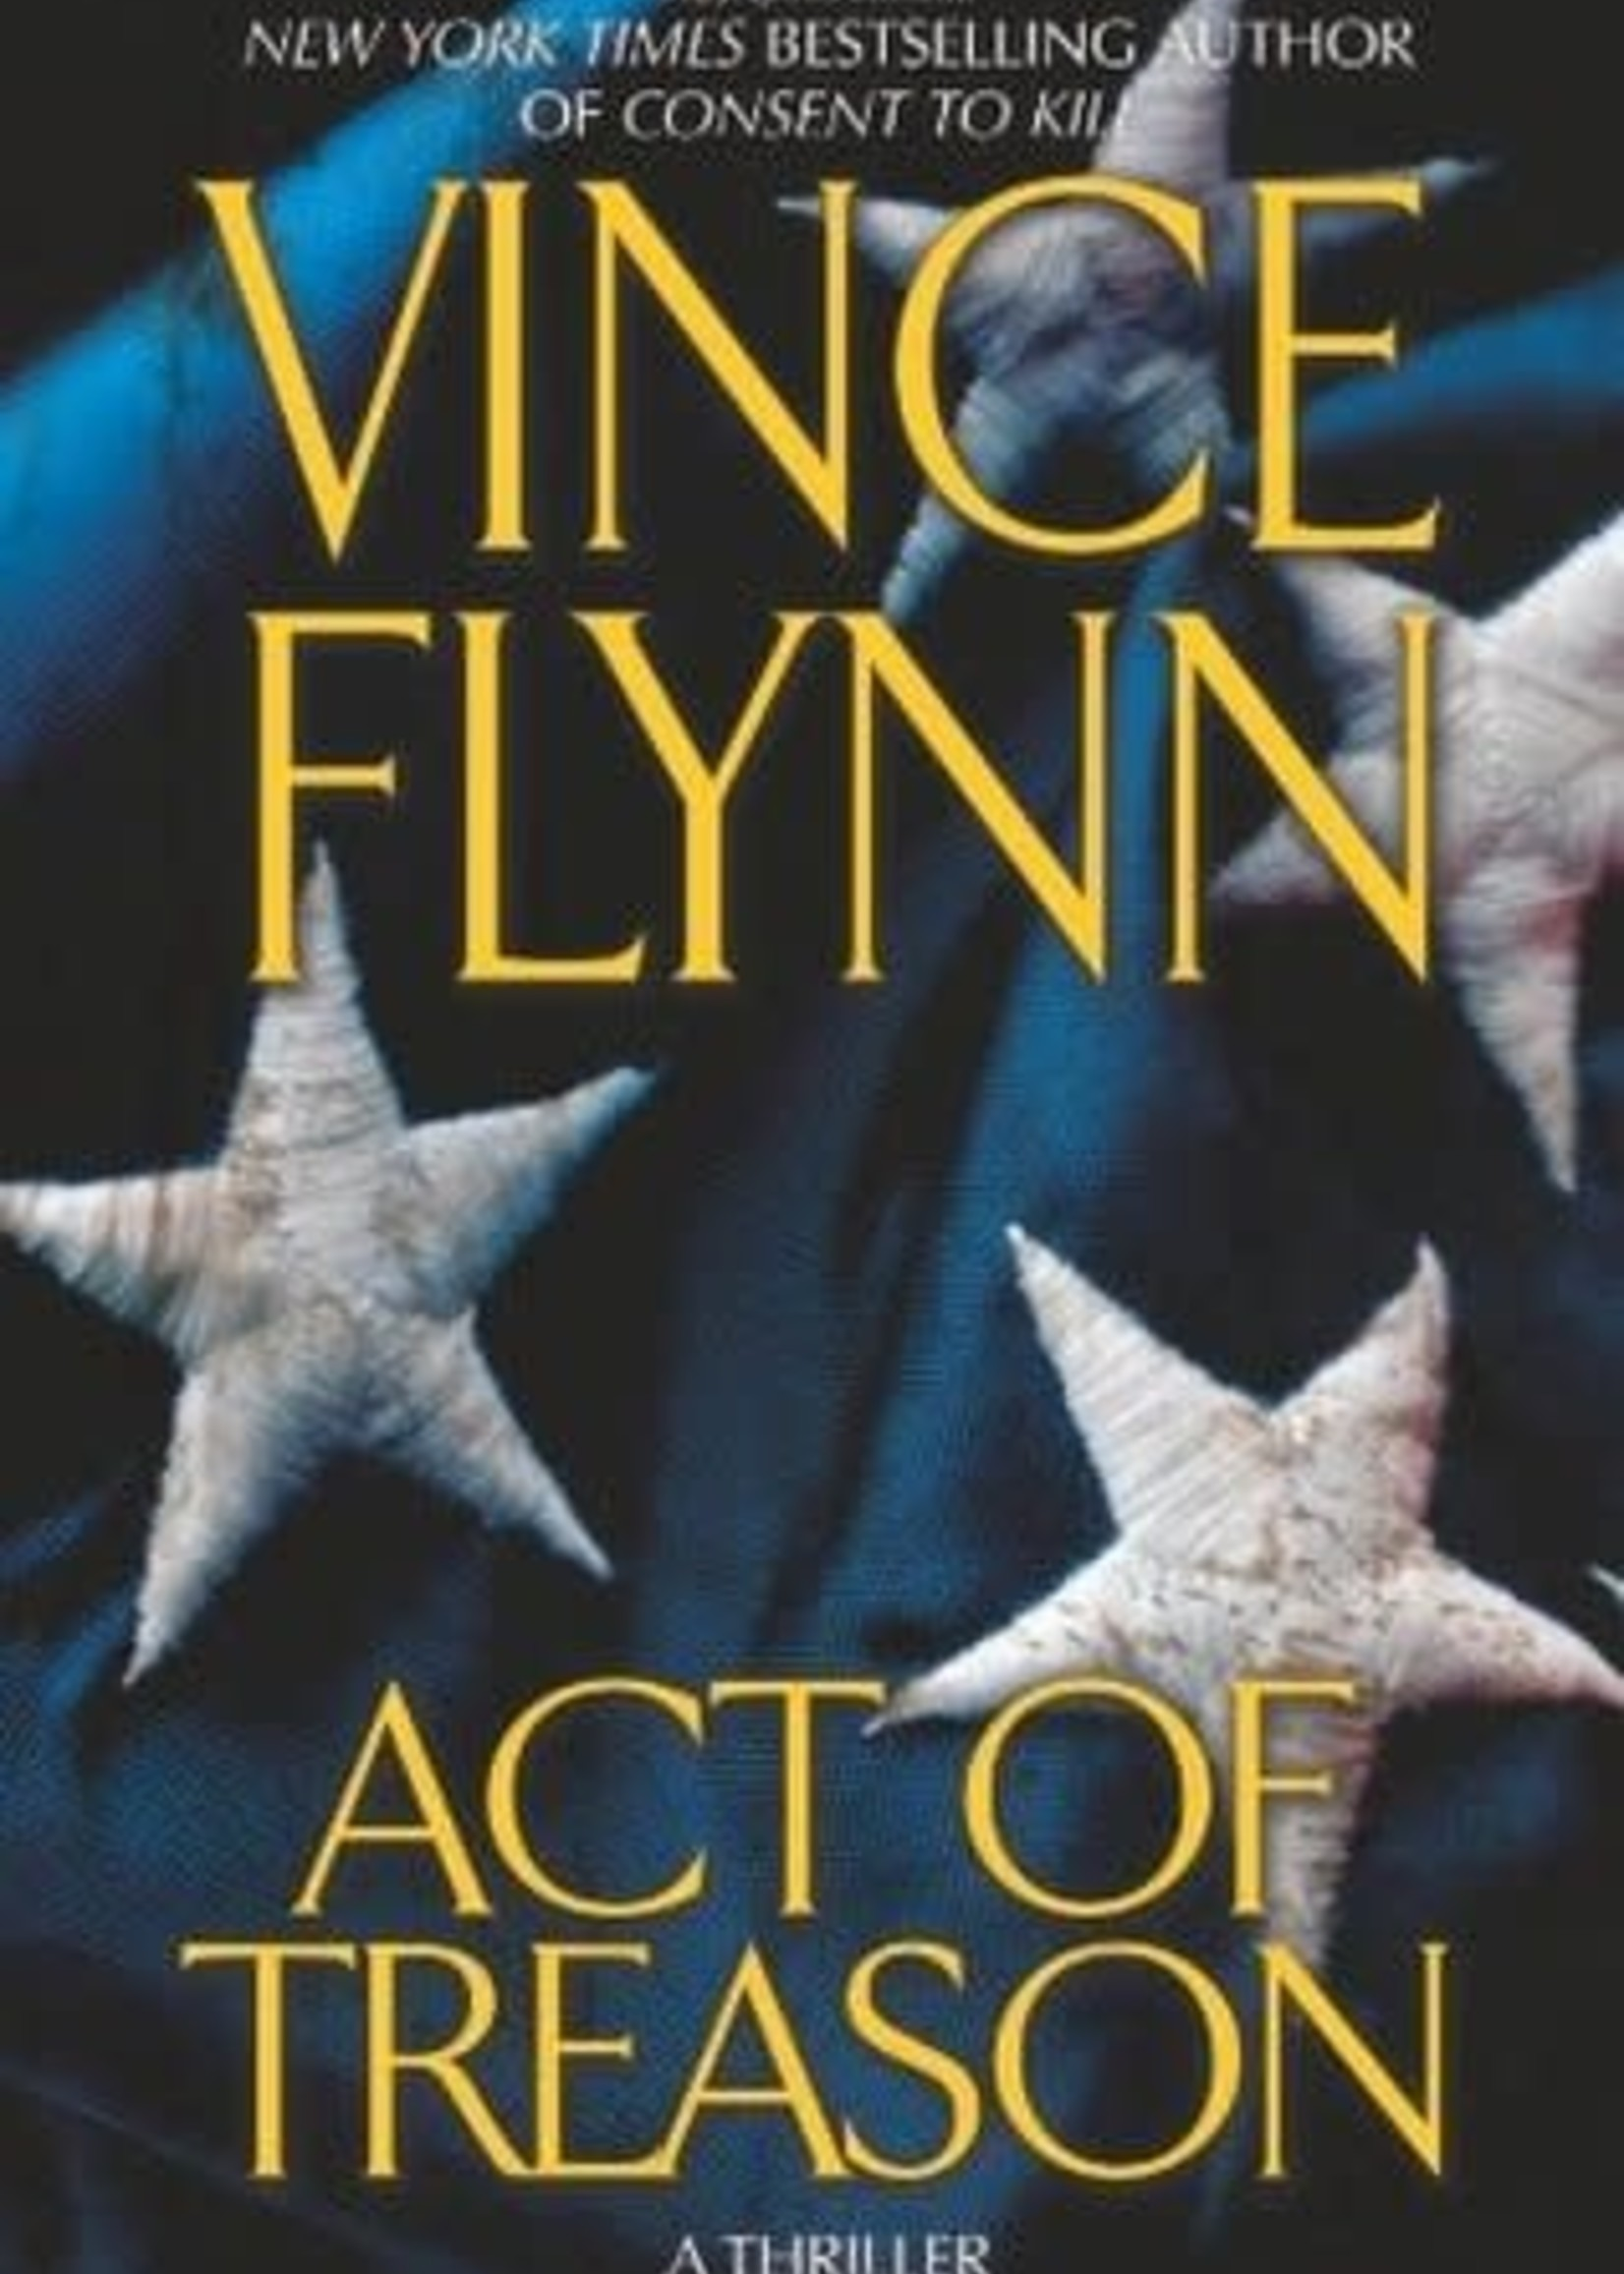 USED - Act of Treason by Vince Flynn